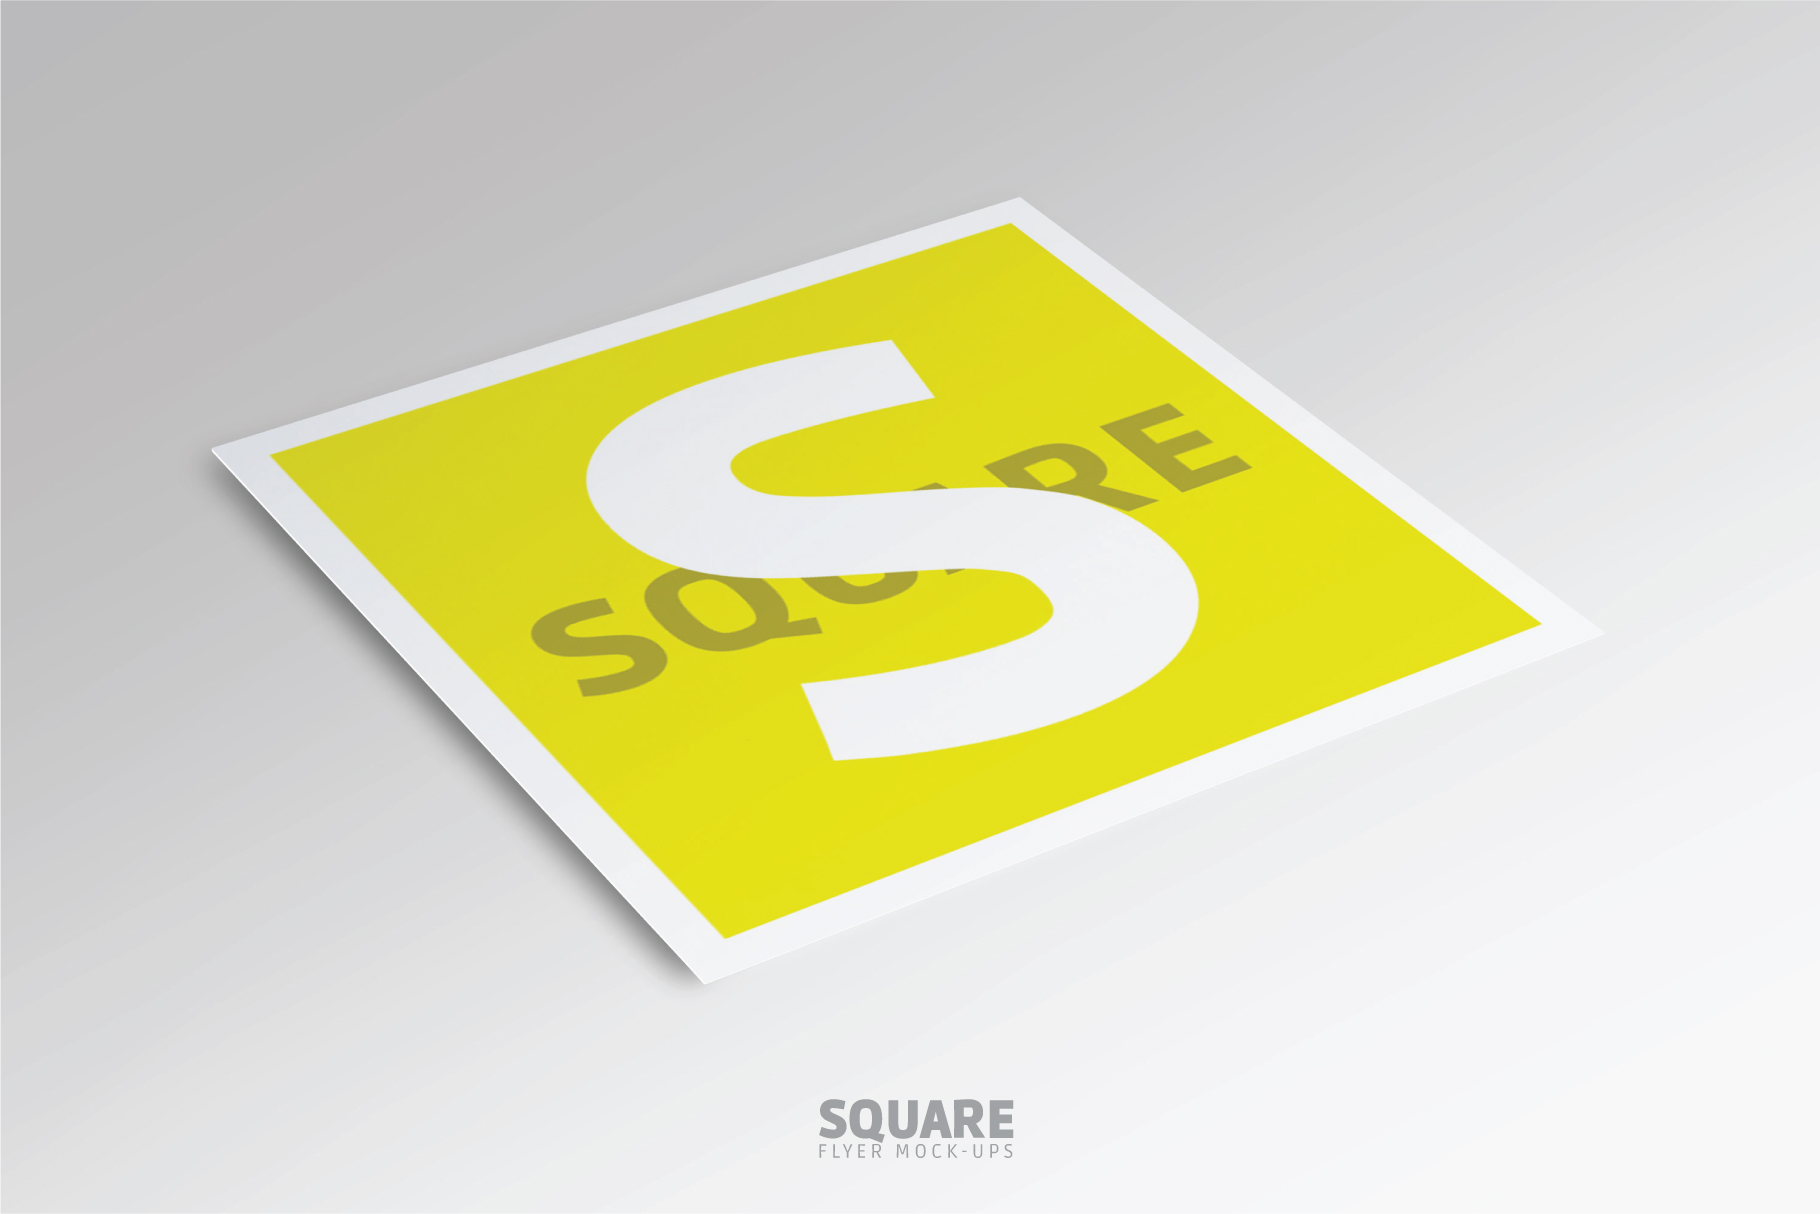 Square Flyer Mock-Up example image 3